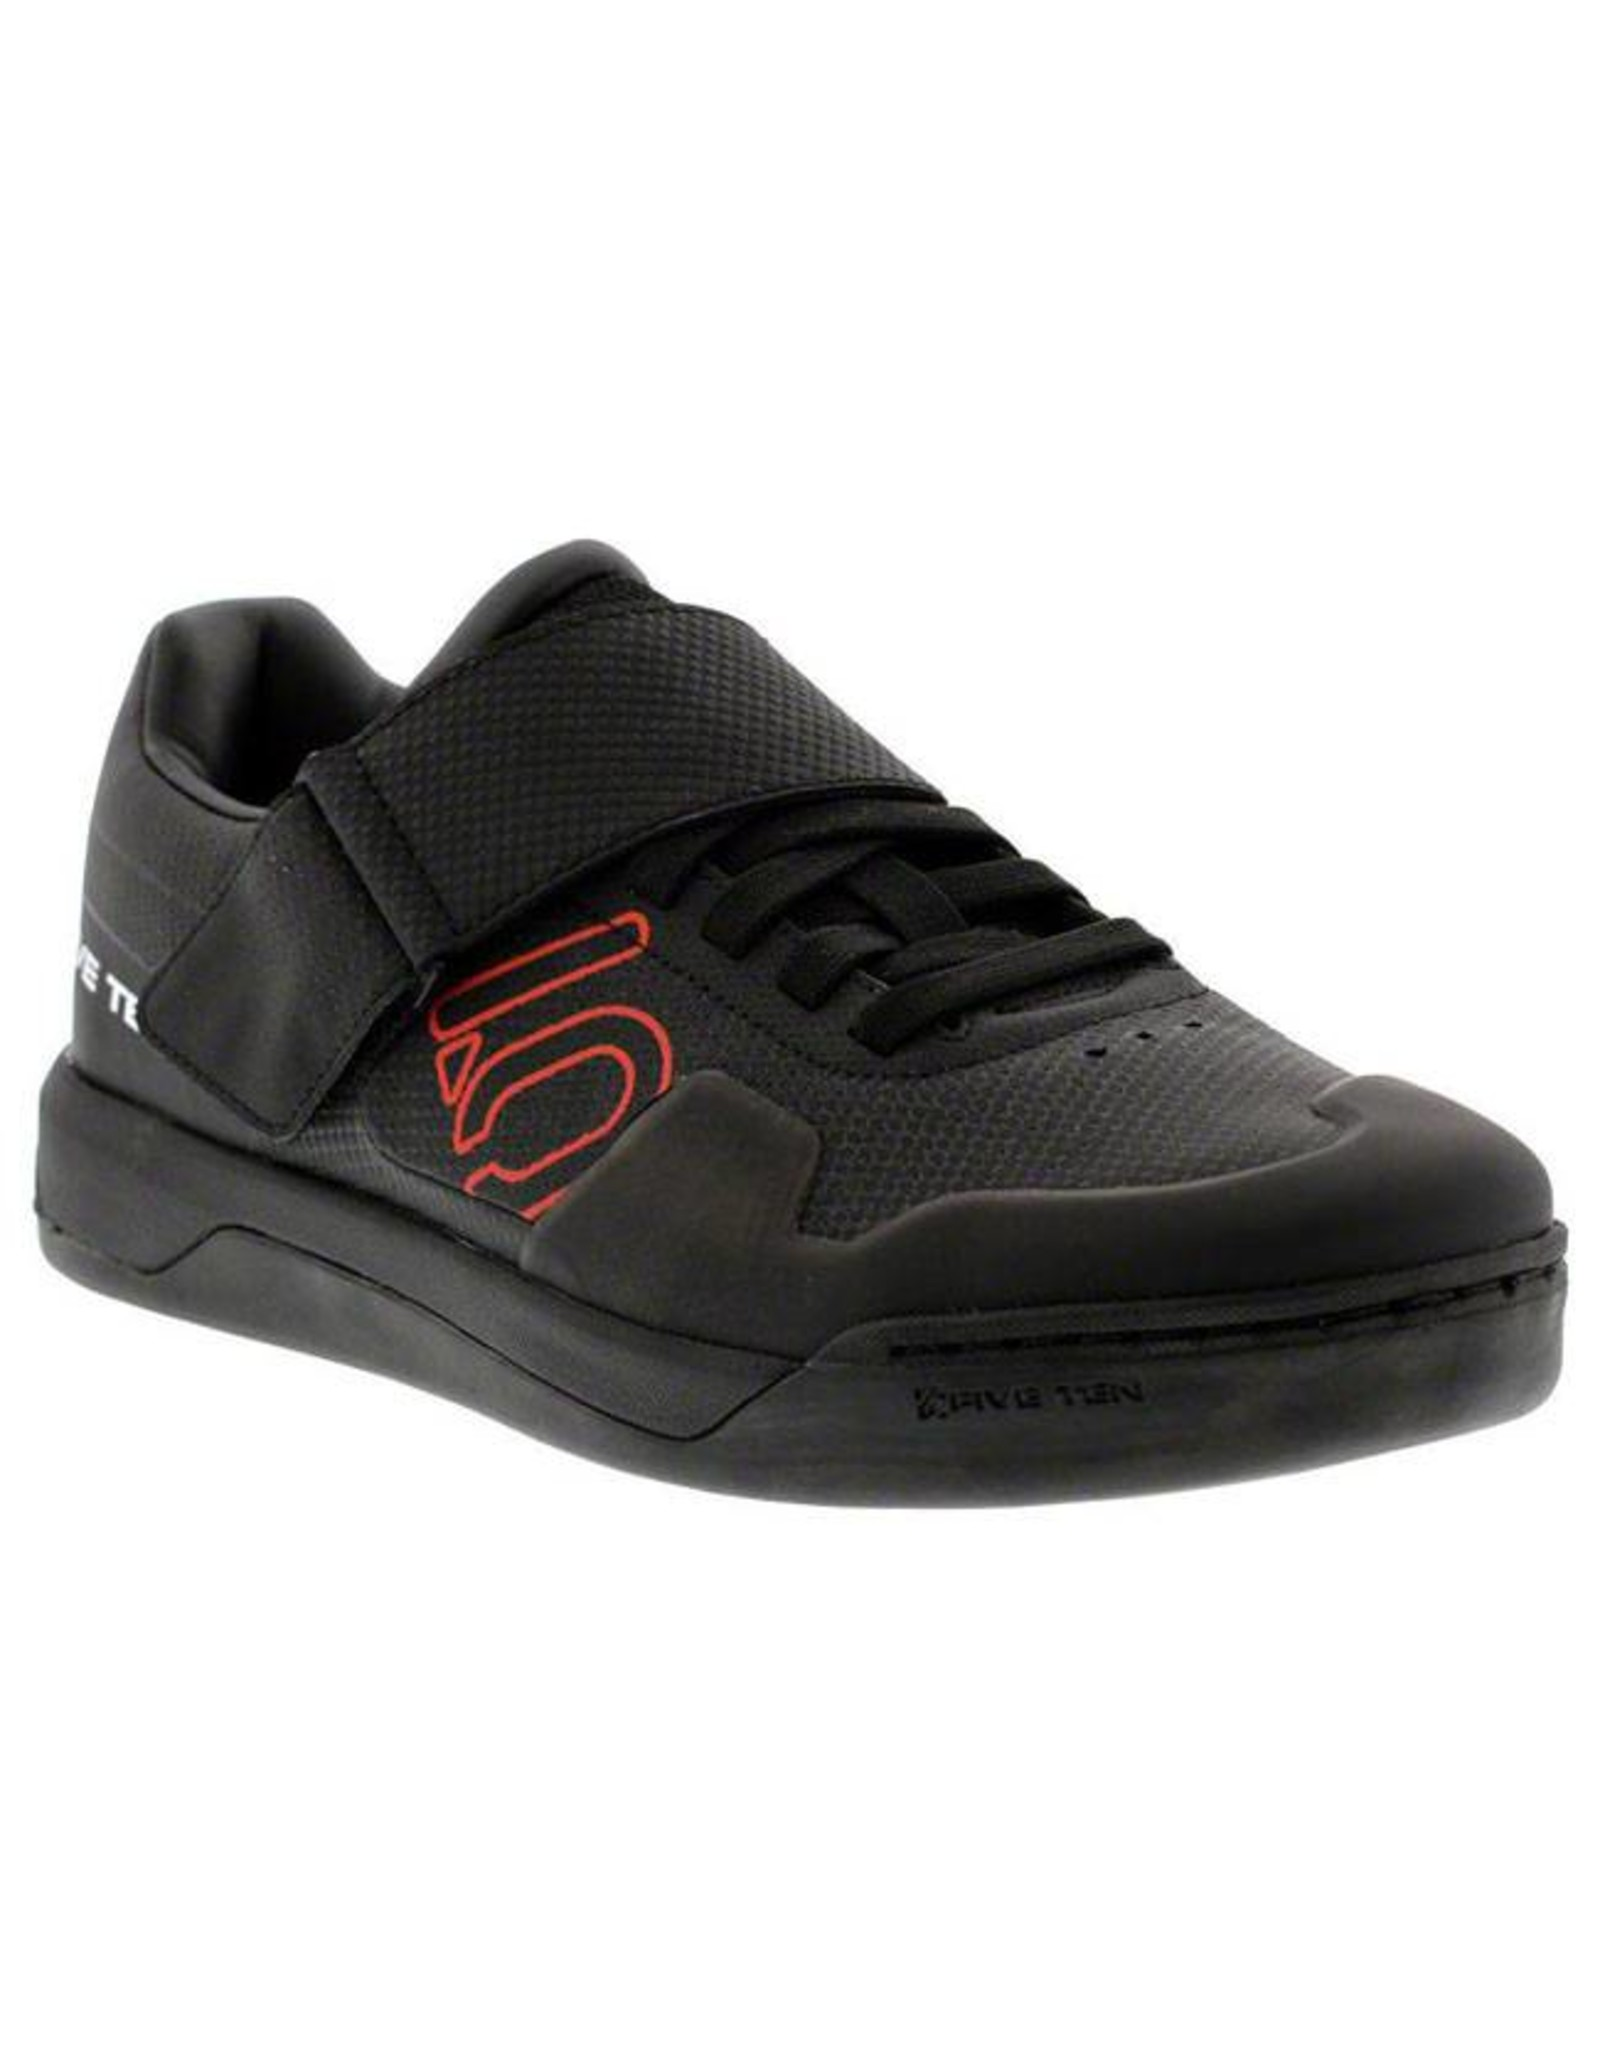 Five Ten Five Ten Hellcat Pro Men's Clipless/Flat Pedal Shoe: Black 11.5